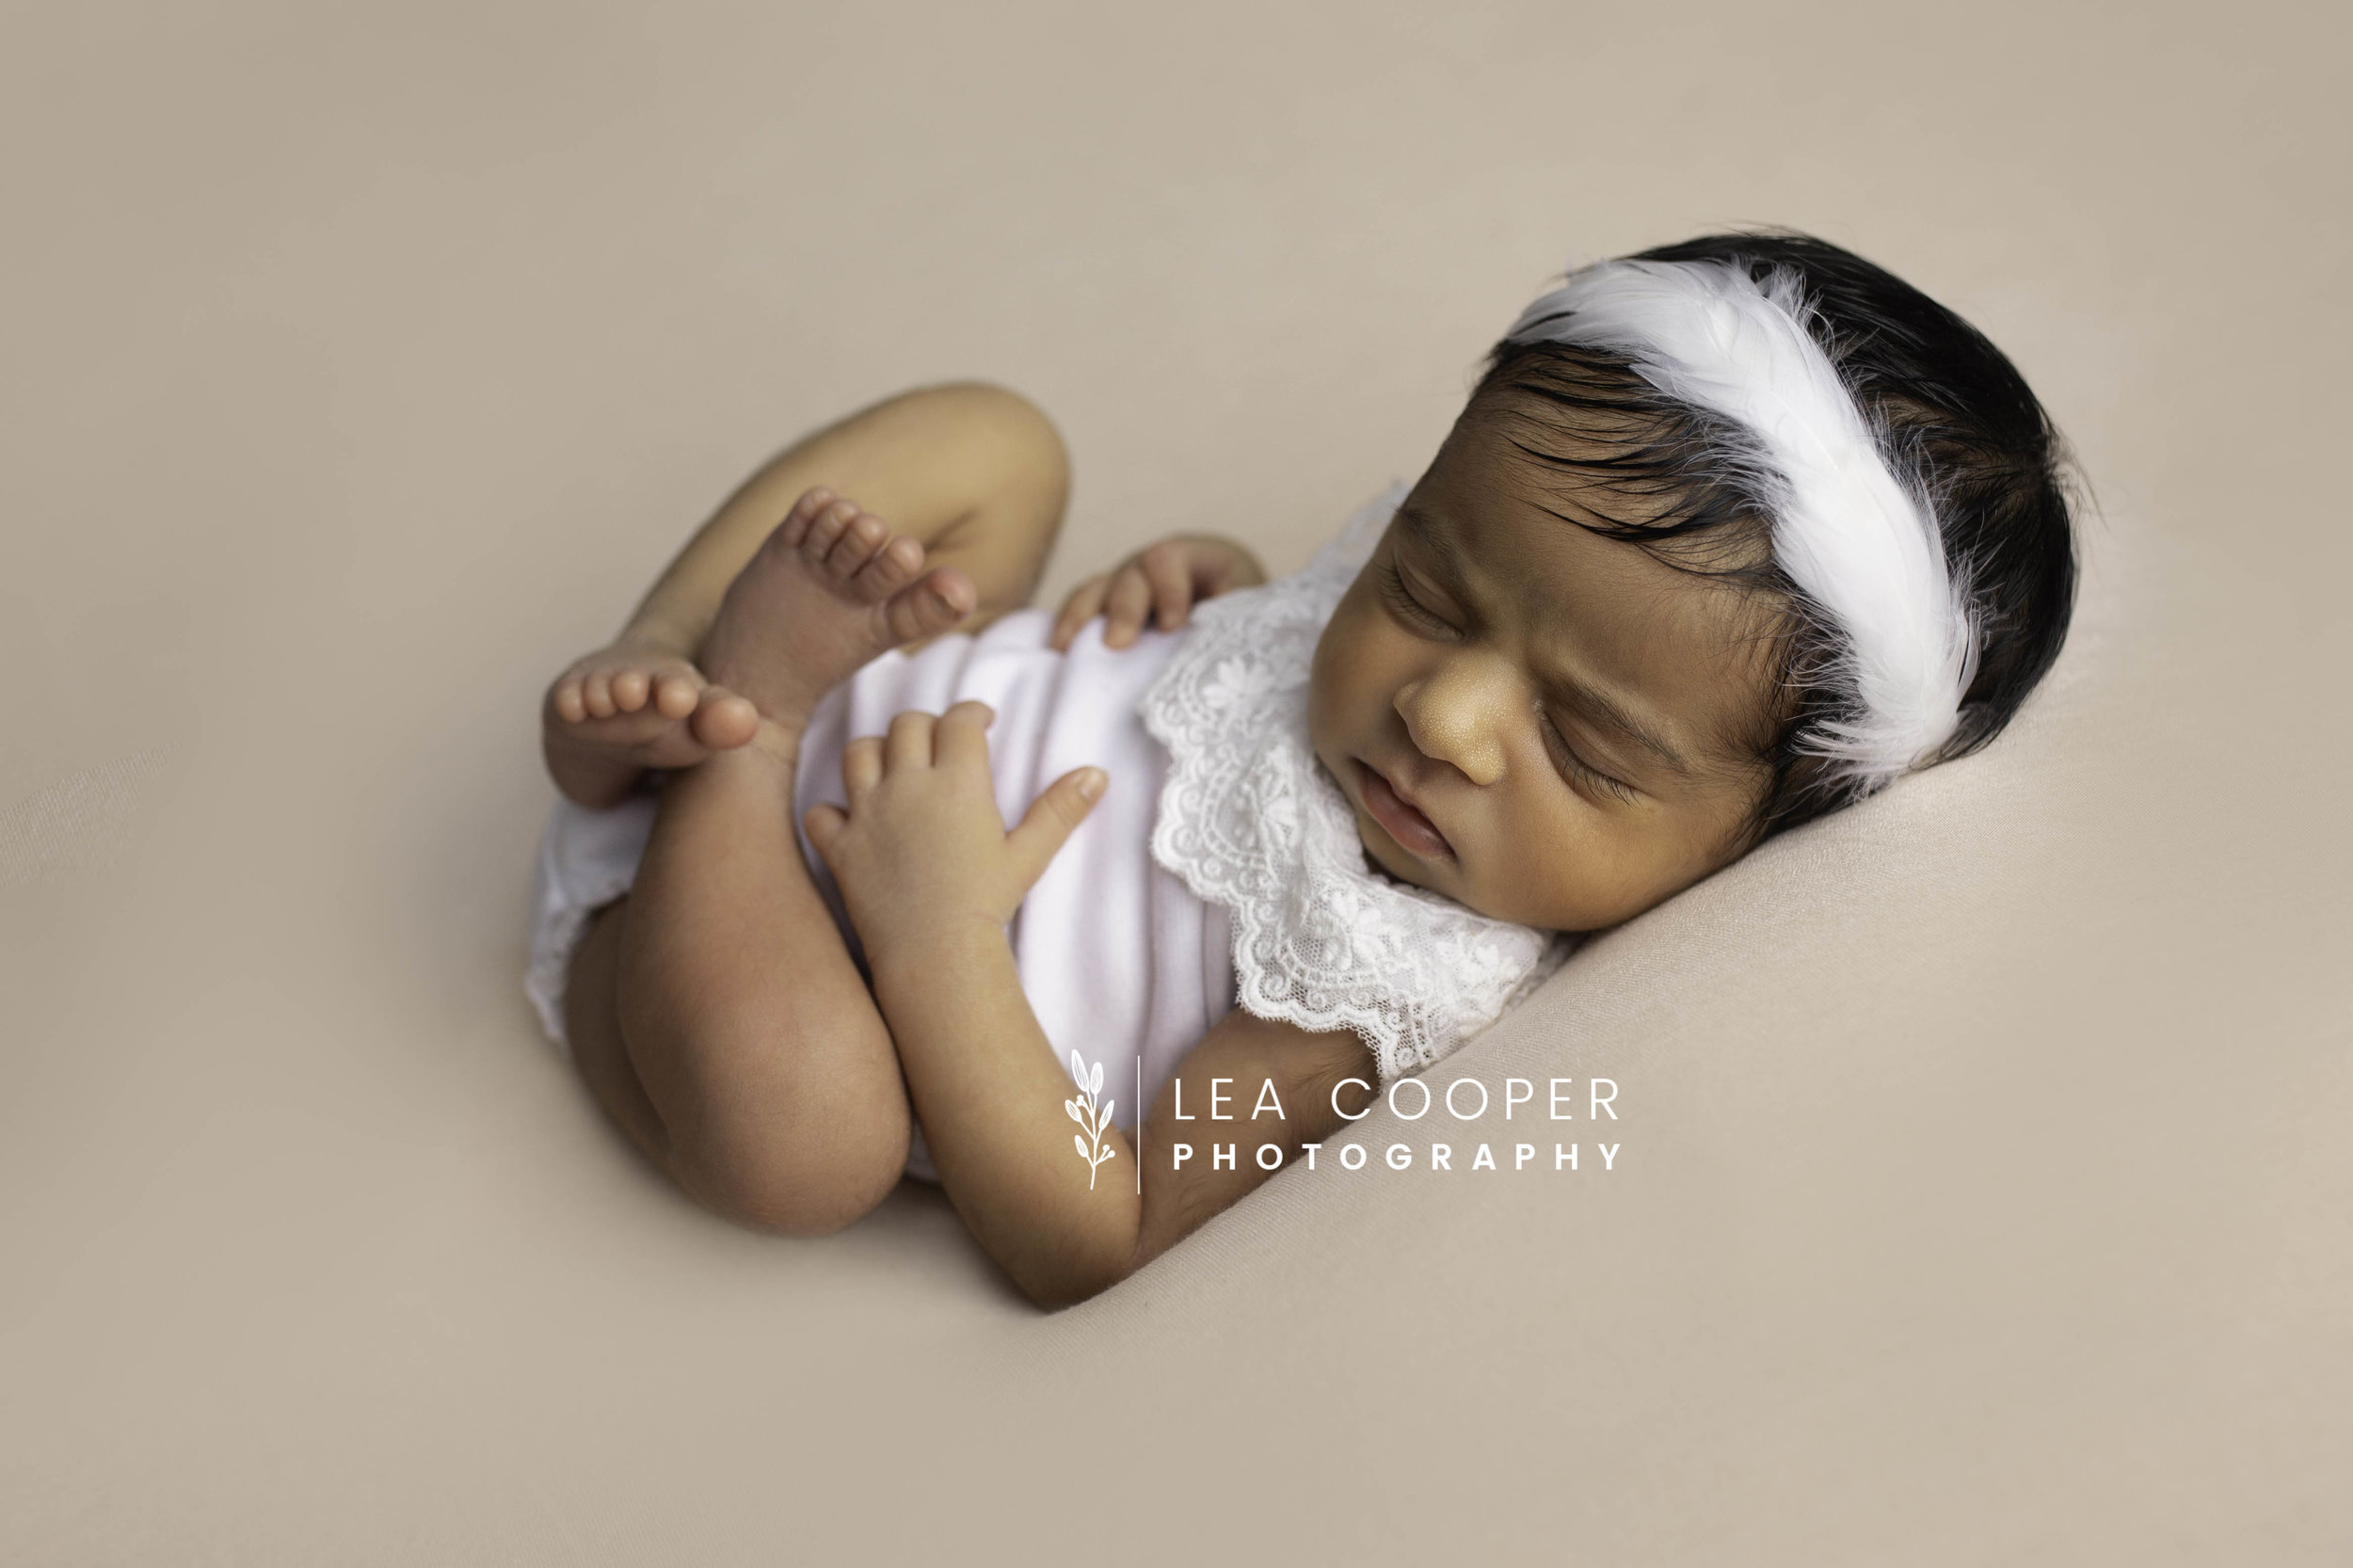 LEA-COOPER-PHOTOGRAPHY-NEWBORN-PHOTOGRAPHER-BABY-PHOTOGRAPHY-NEWBORN-SESSION-WILLENHALL-WOLVERHAMPTON-WEST-MIDLANDS-UK-9.jpg